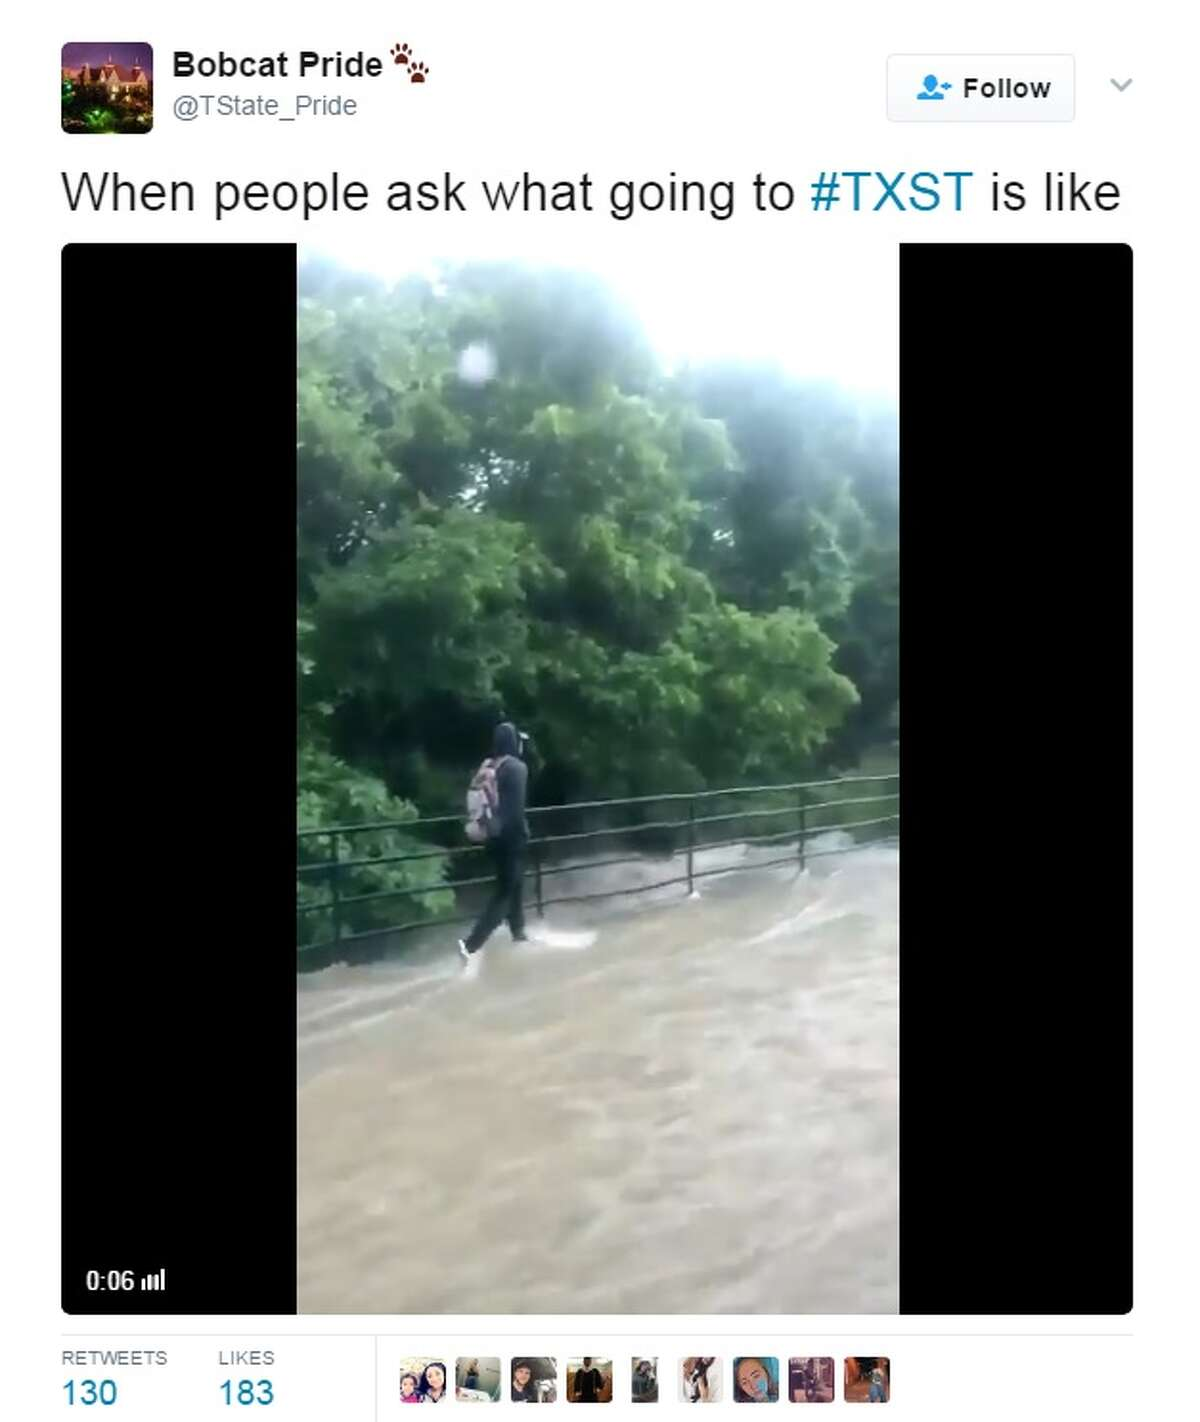 @TState_Pride shared the video above when San Marcos received heavy rain April 12, 2017.